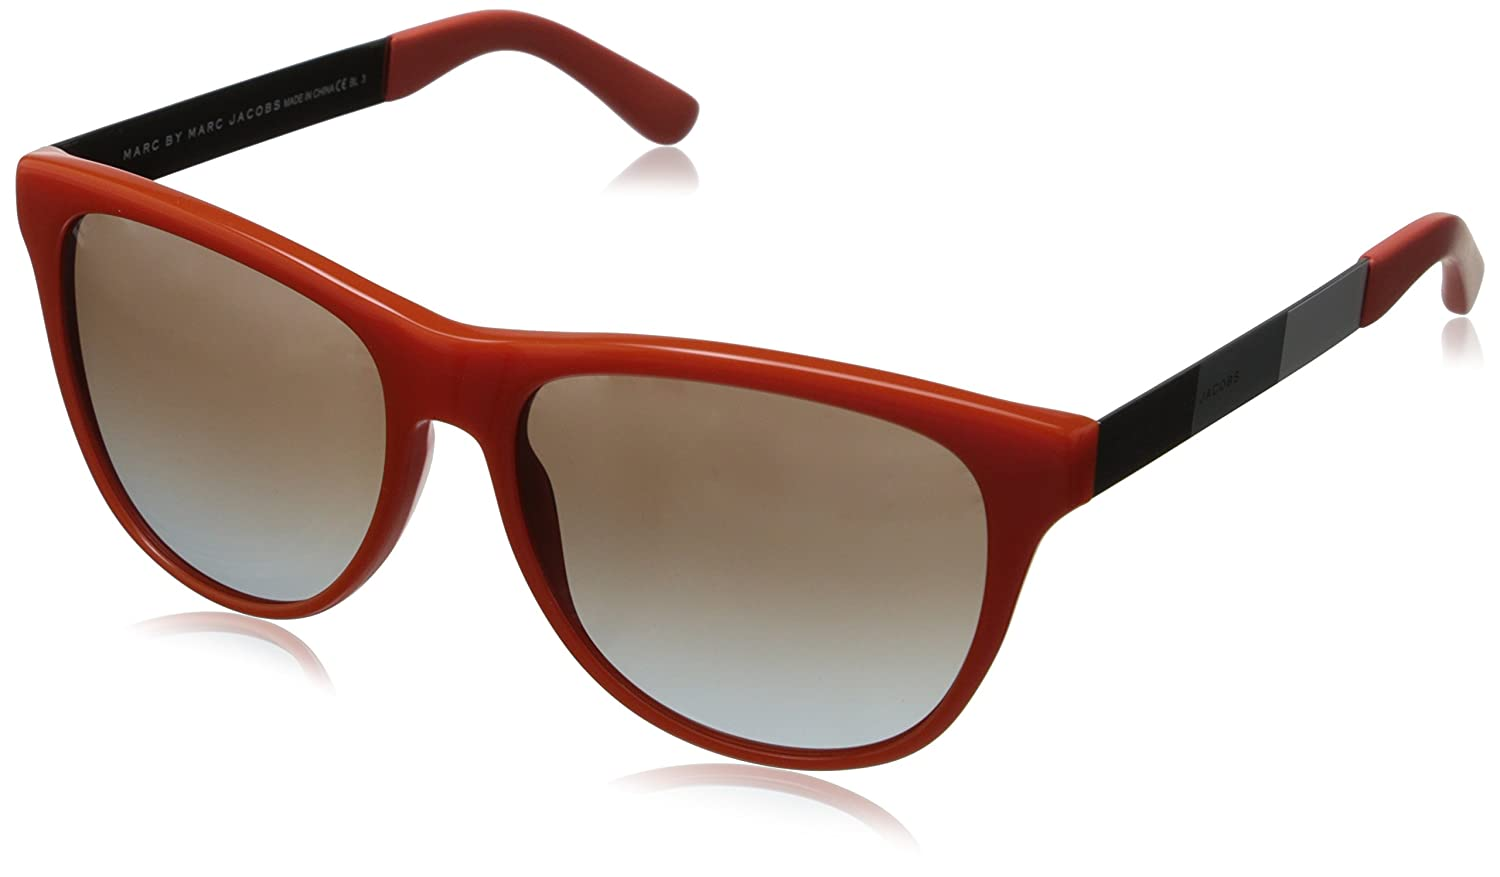 Marc by Marc Jacobs Unisex 408/S Sunglasses, Grey (Orange with Striped Grey/White/Black), One Size (Manufacturer Size:55 -16 -140) Mmj408s MMJ408/STF_6WG-55